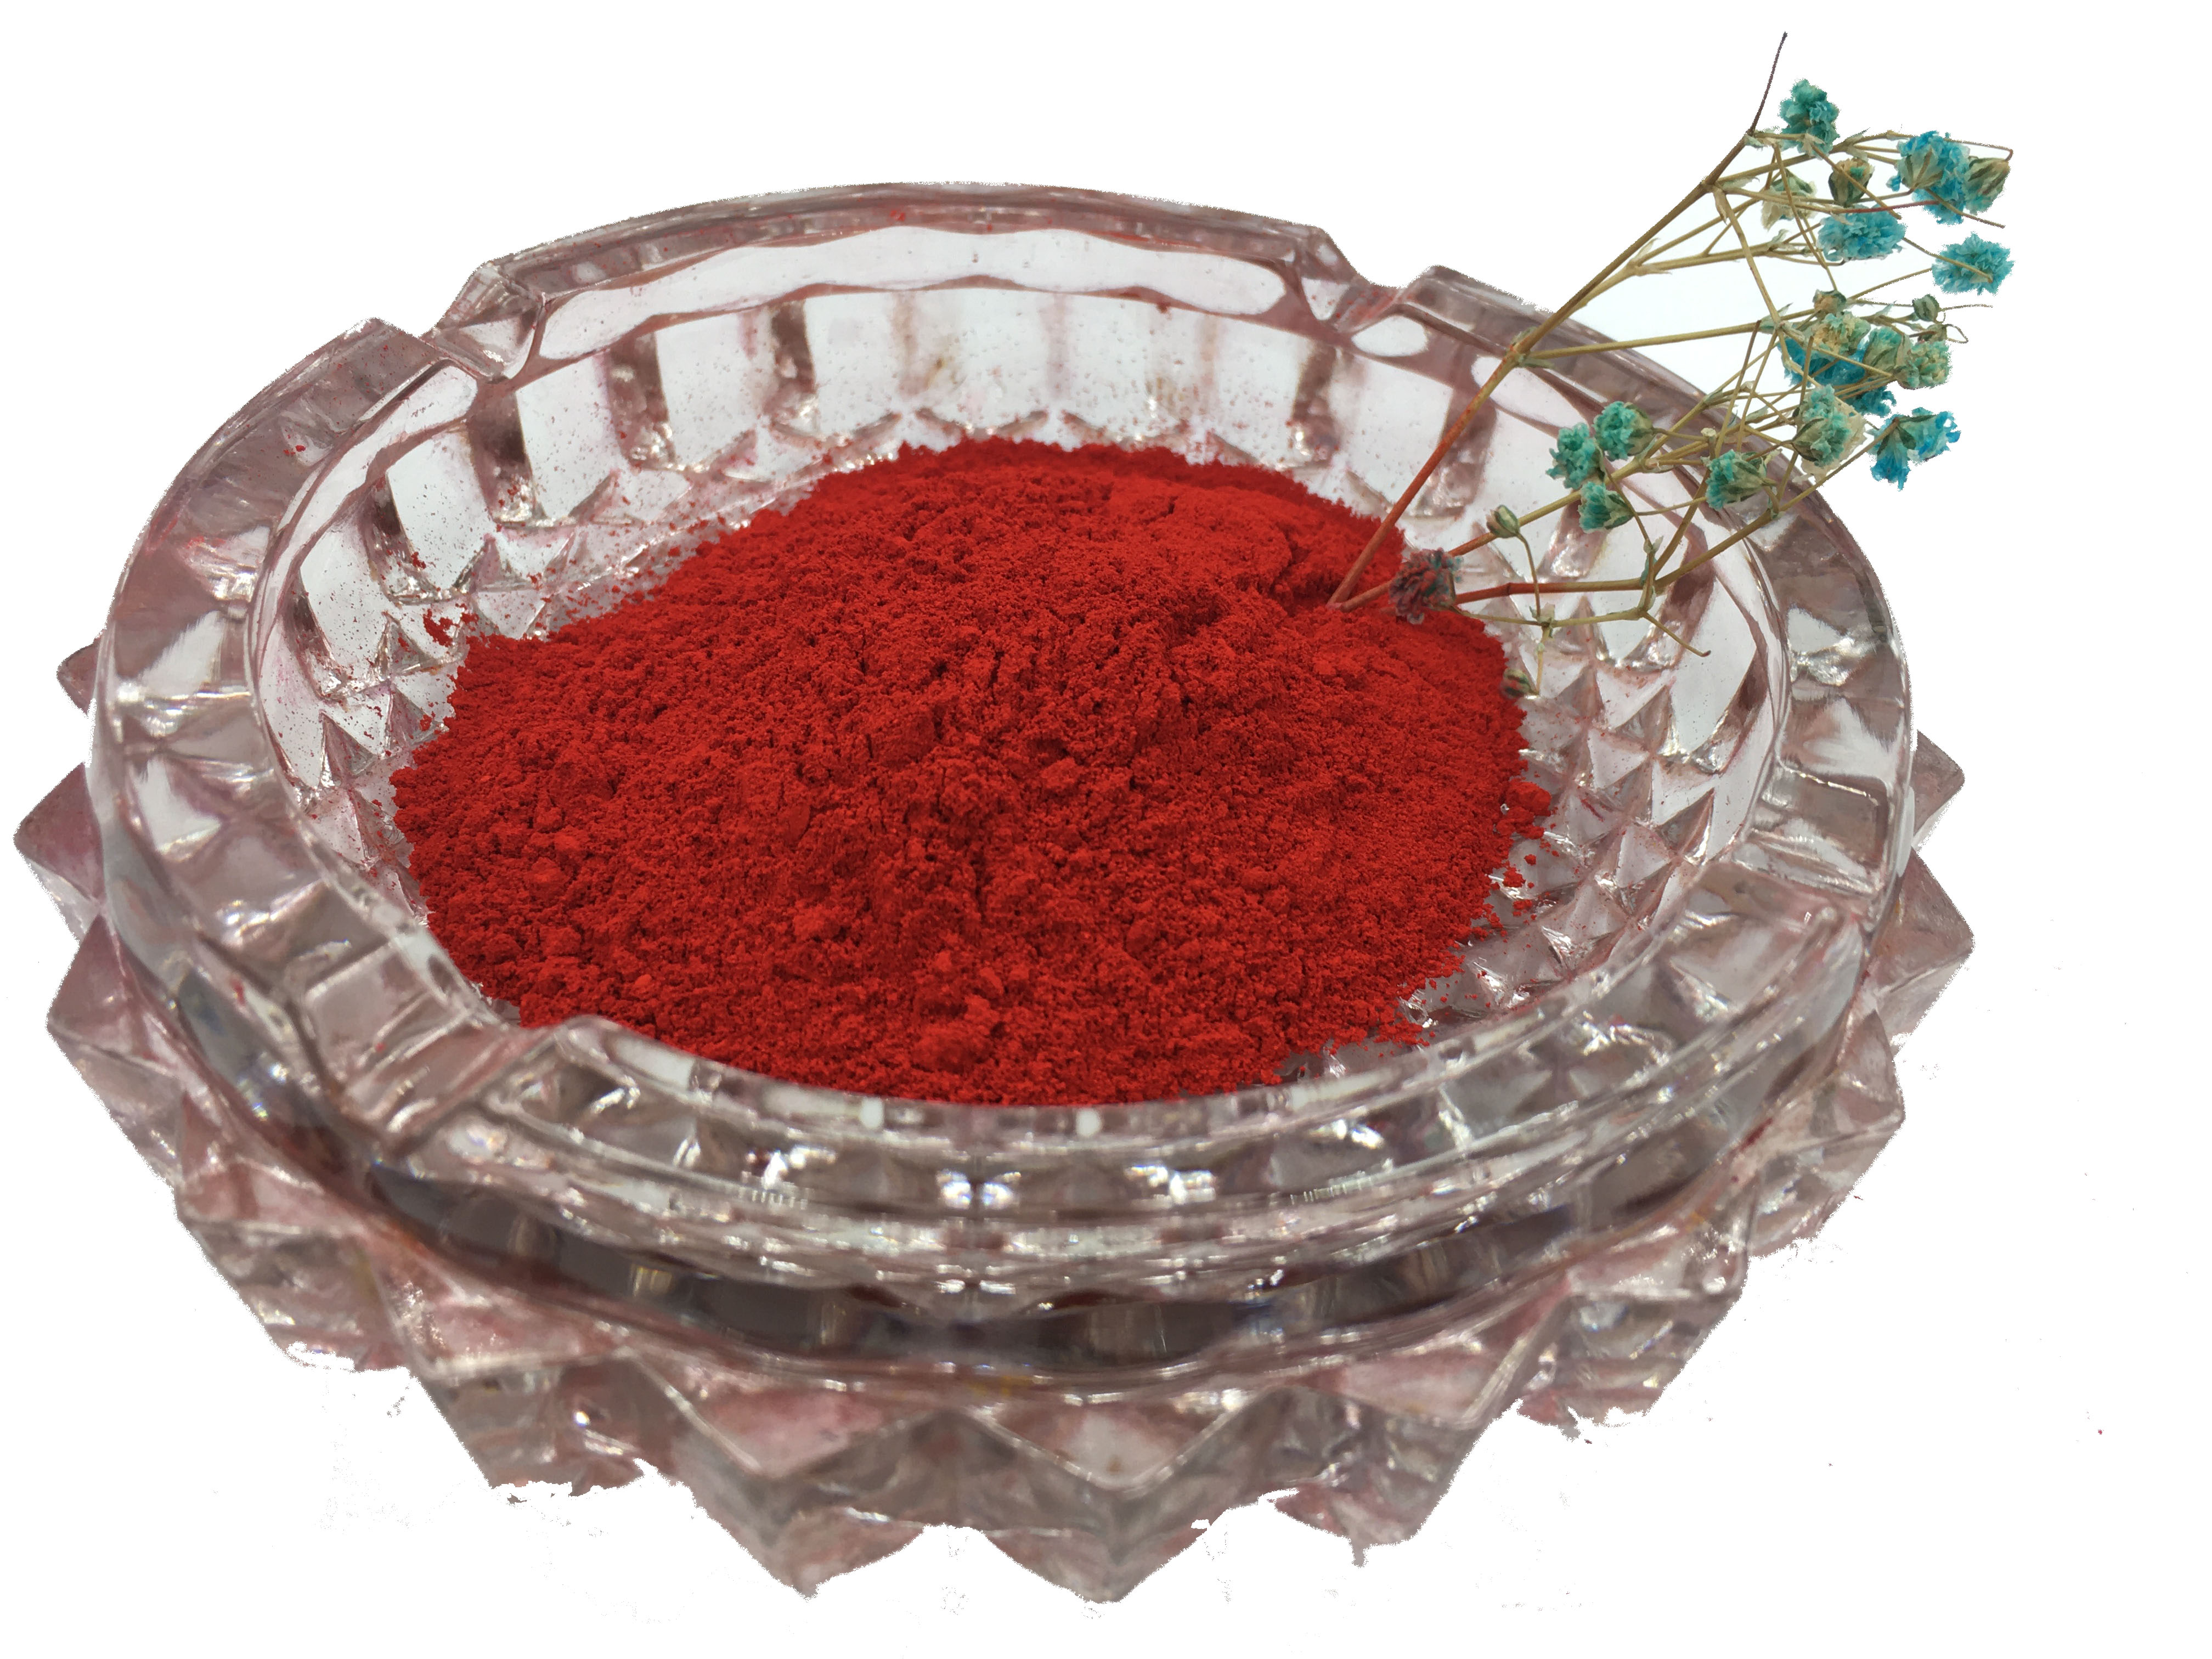 Pigment Red 21 Wholesale Bulk Red Color Powder Pigment For Plastic Coating And Paints